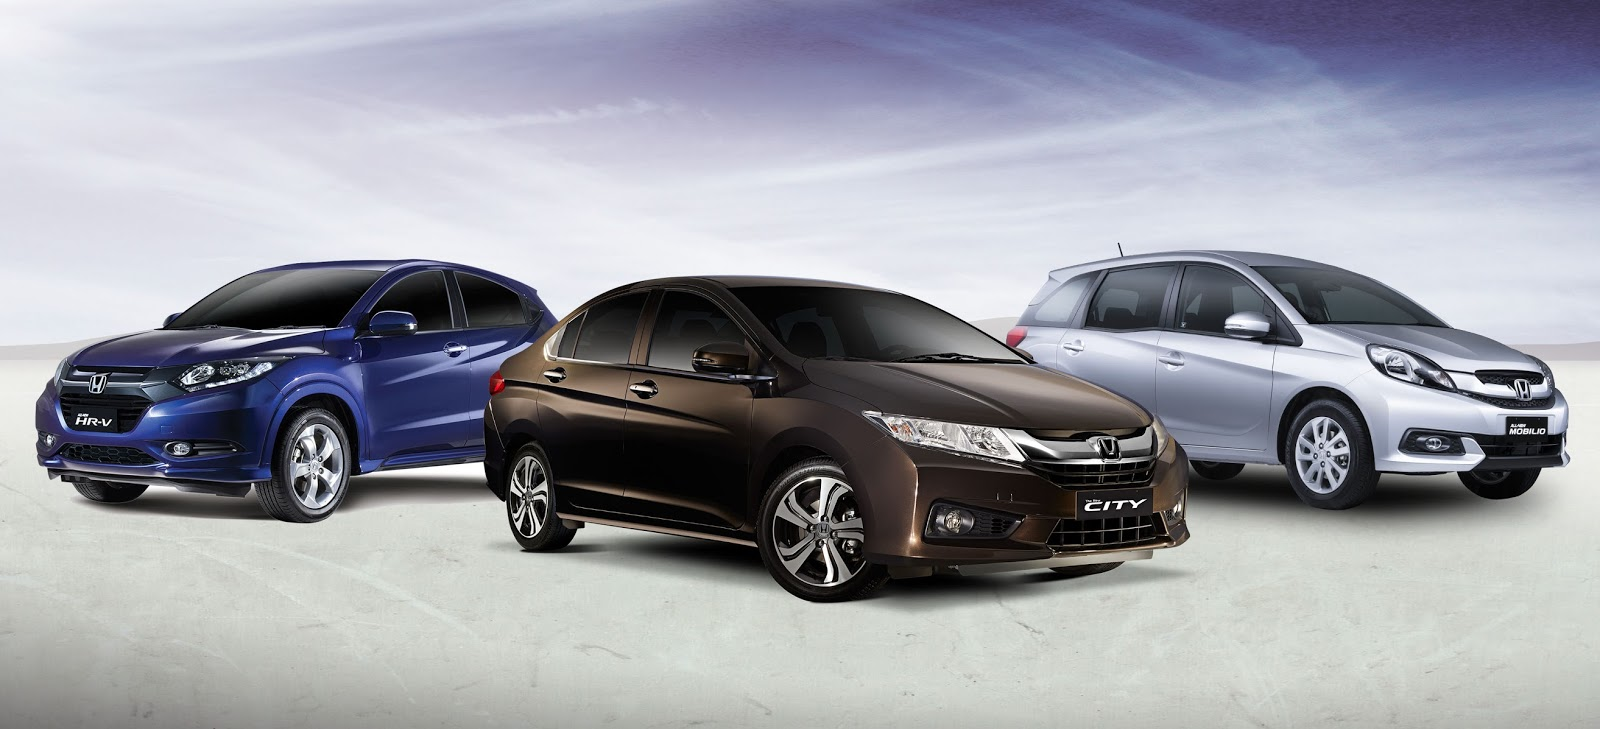 Honda HR-V, Honda City and Honda Mobilio